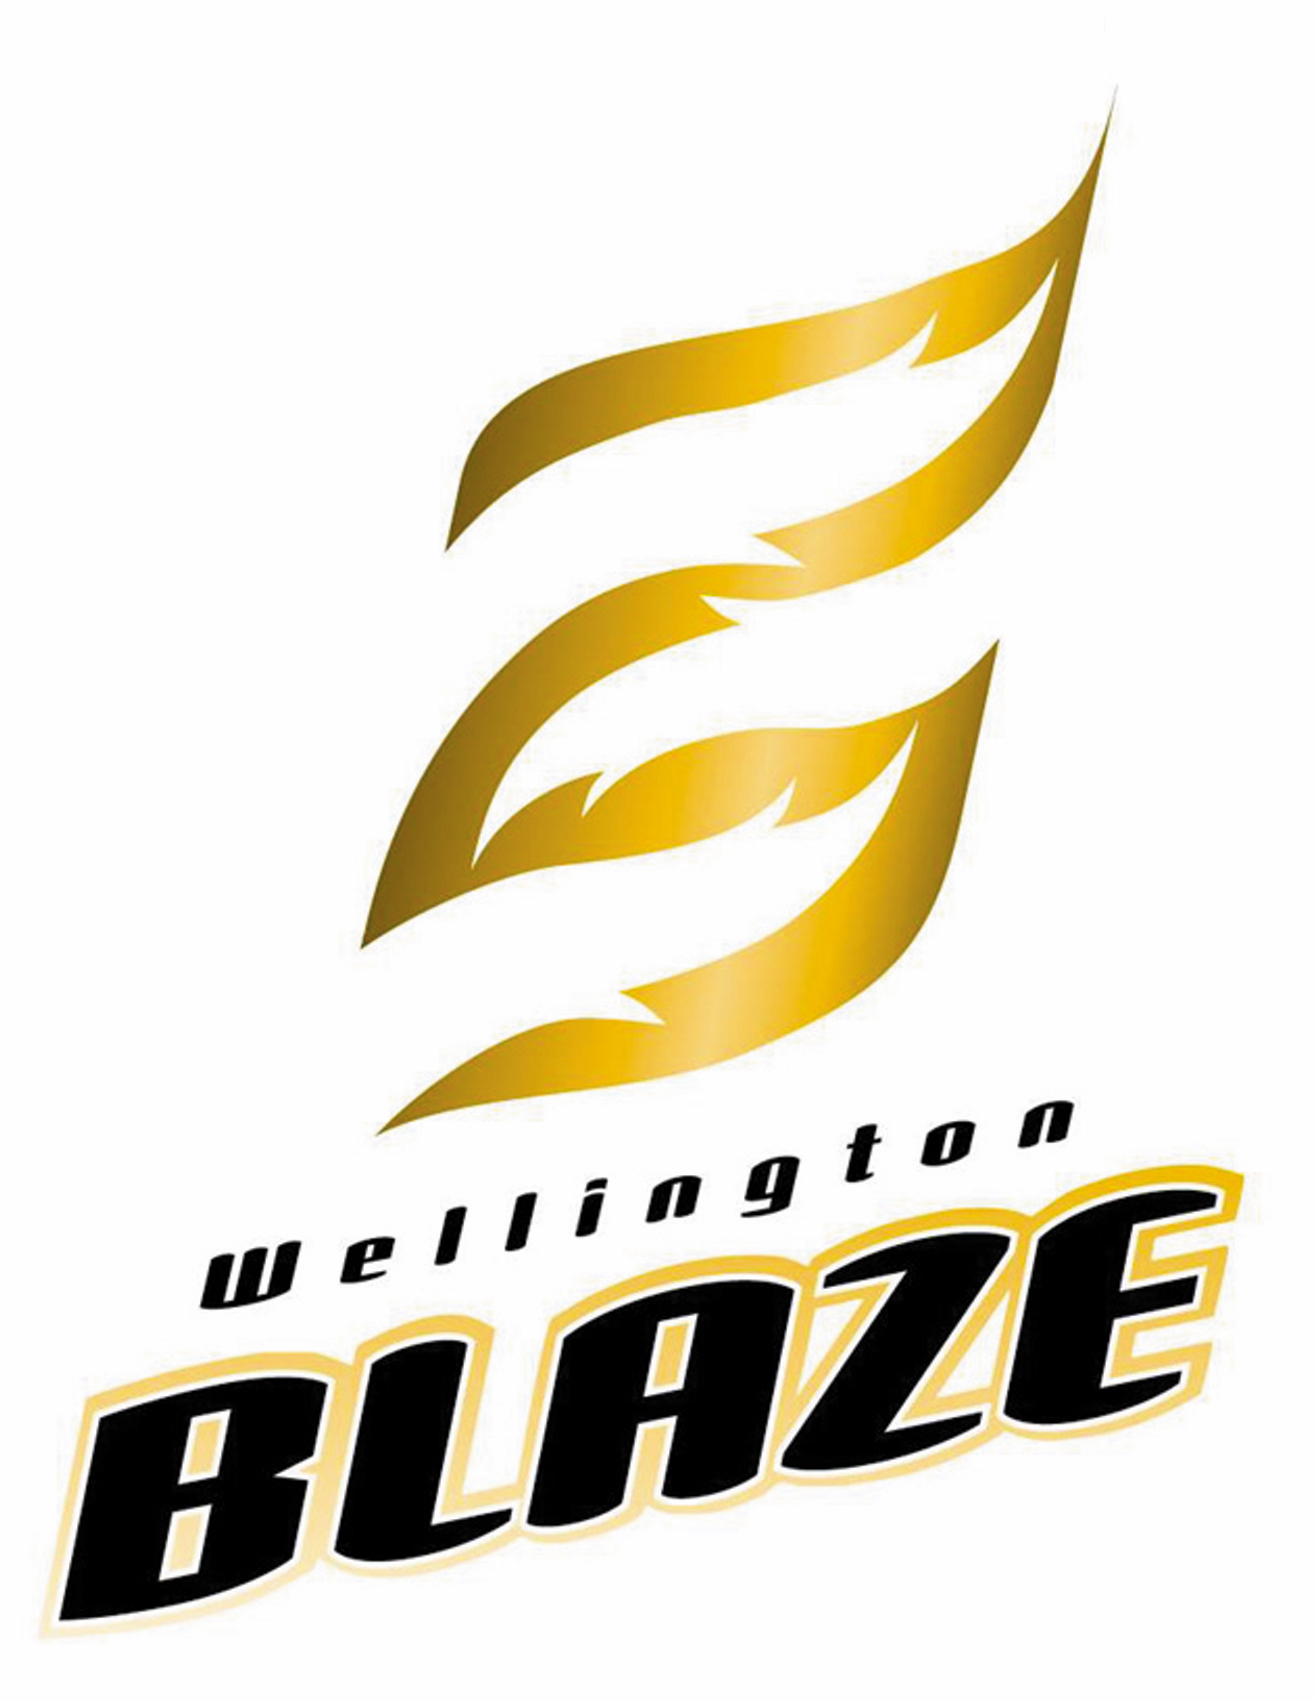 High Res Blaze Logo copy.jpg